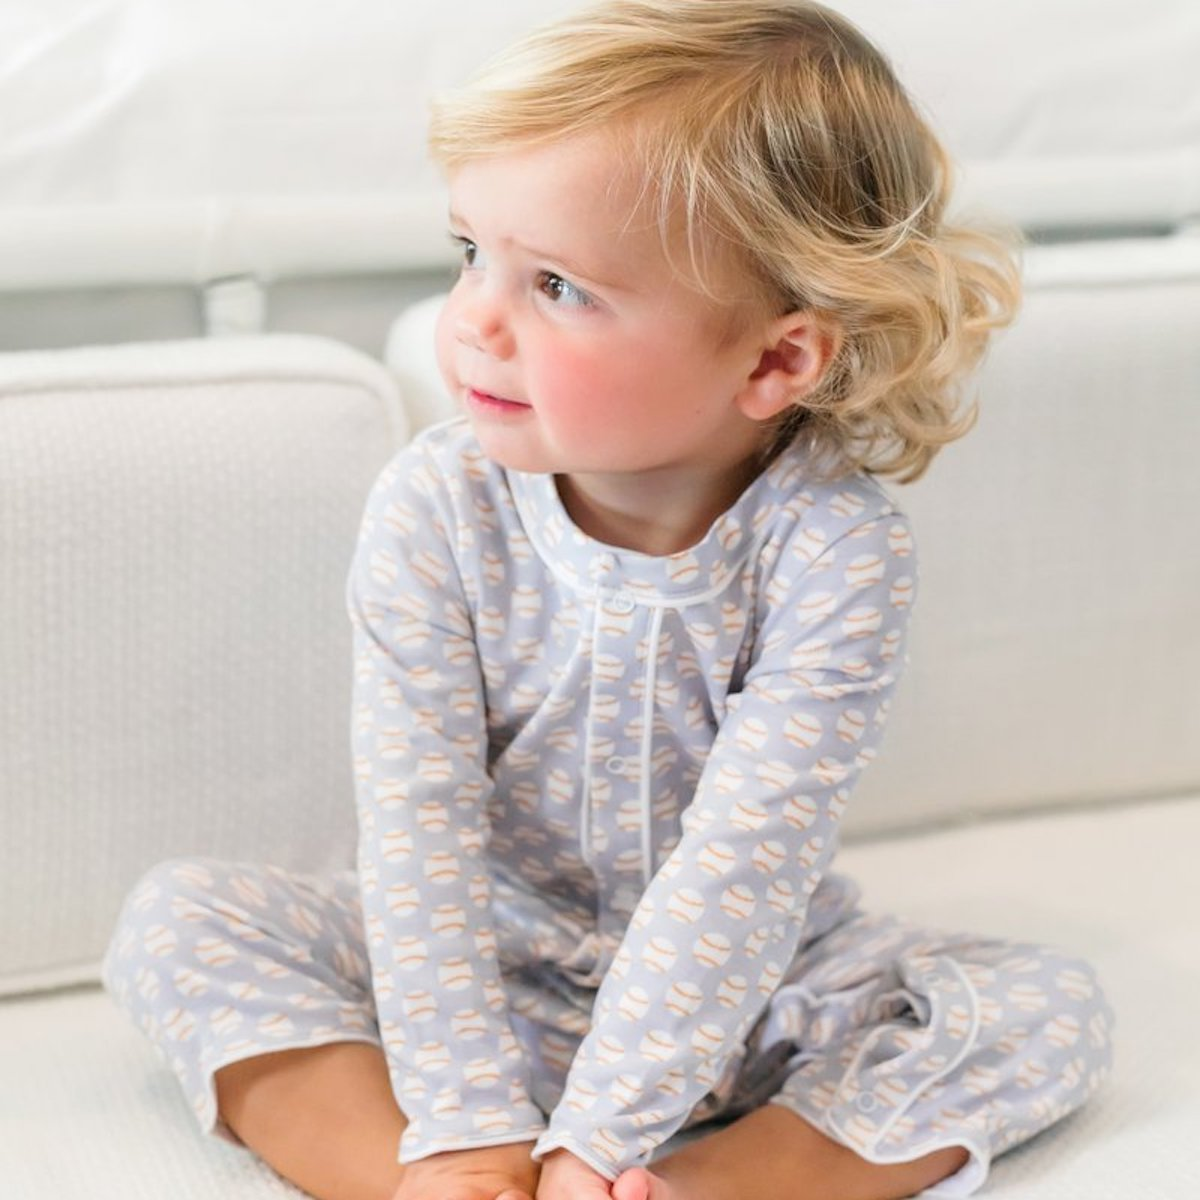 A blonde baby sitting cross-legged wearing Lila and Hayes pajamas